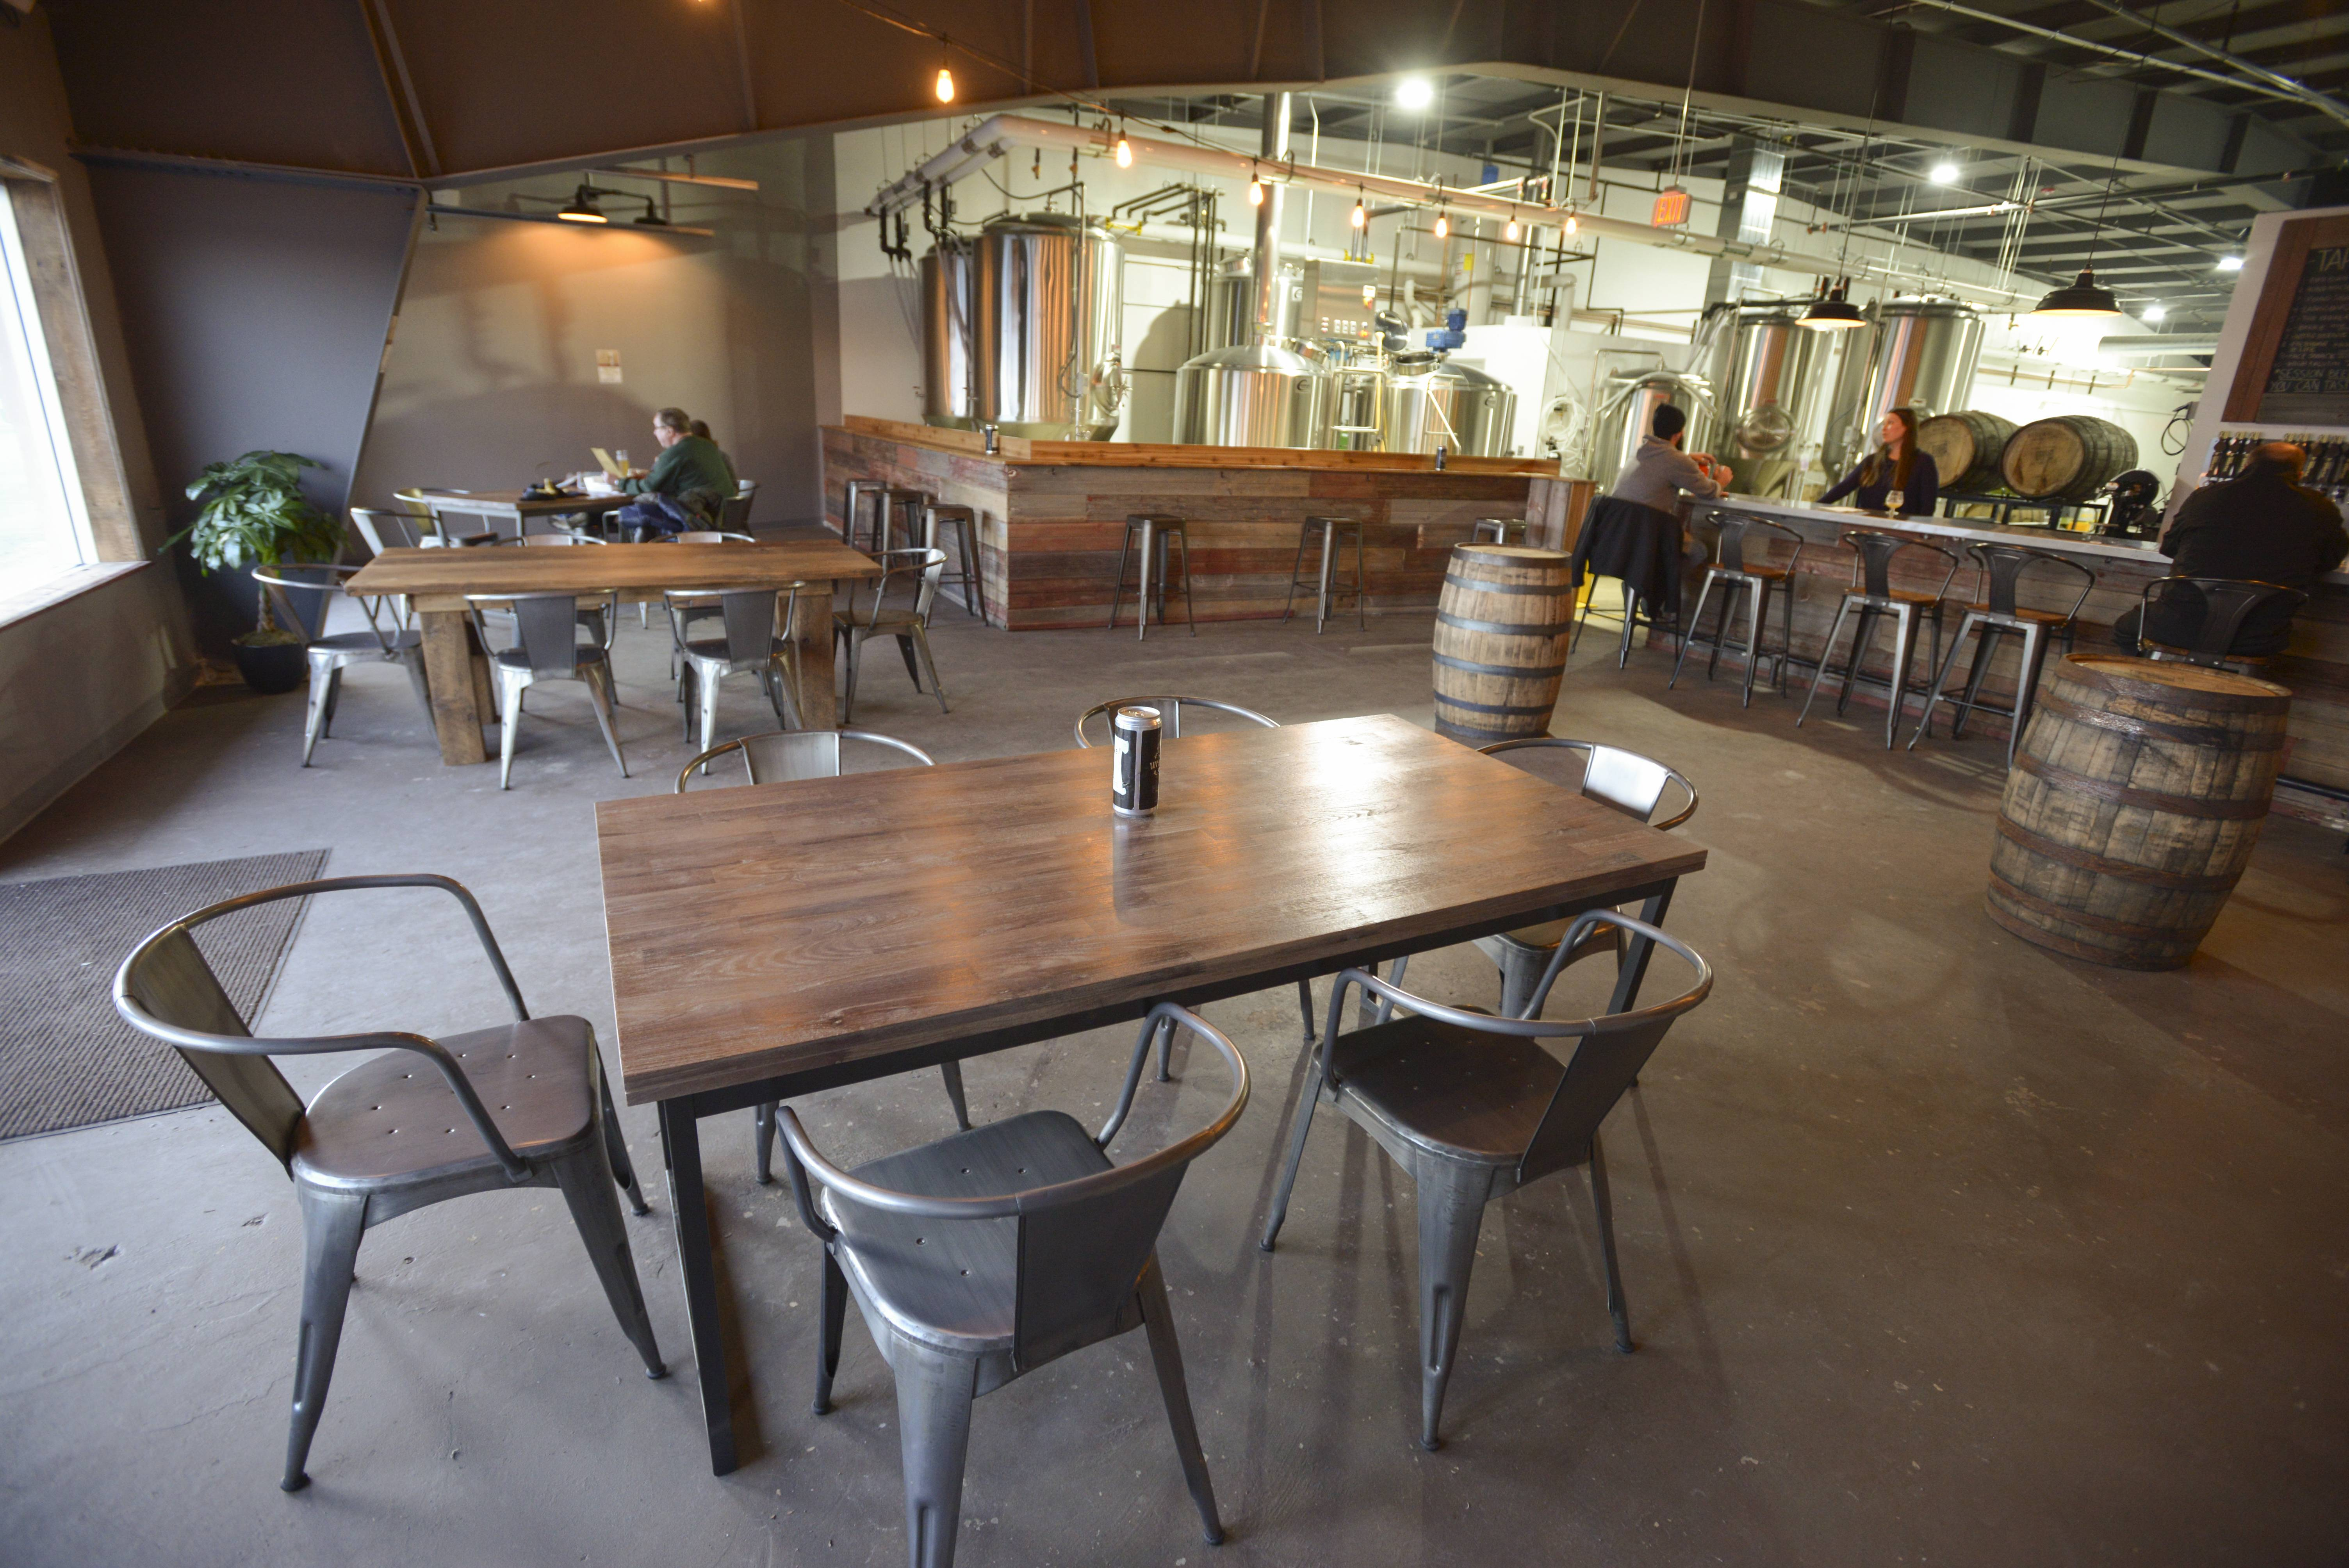 Noon Whistle Brewing in Lombard has a few tables in its large standing area.